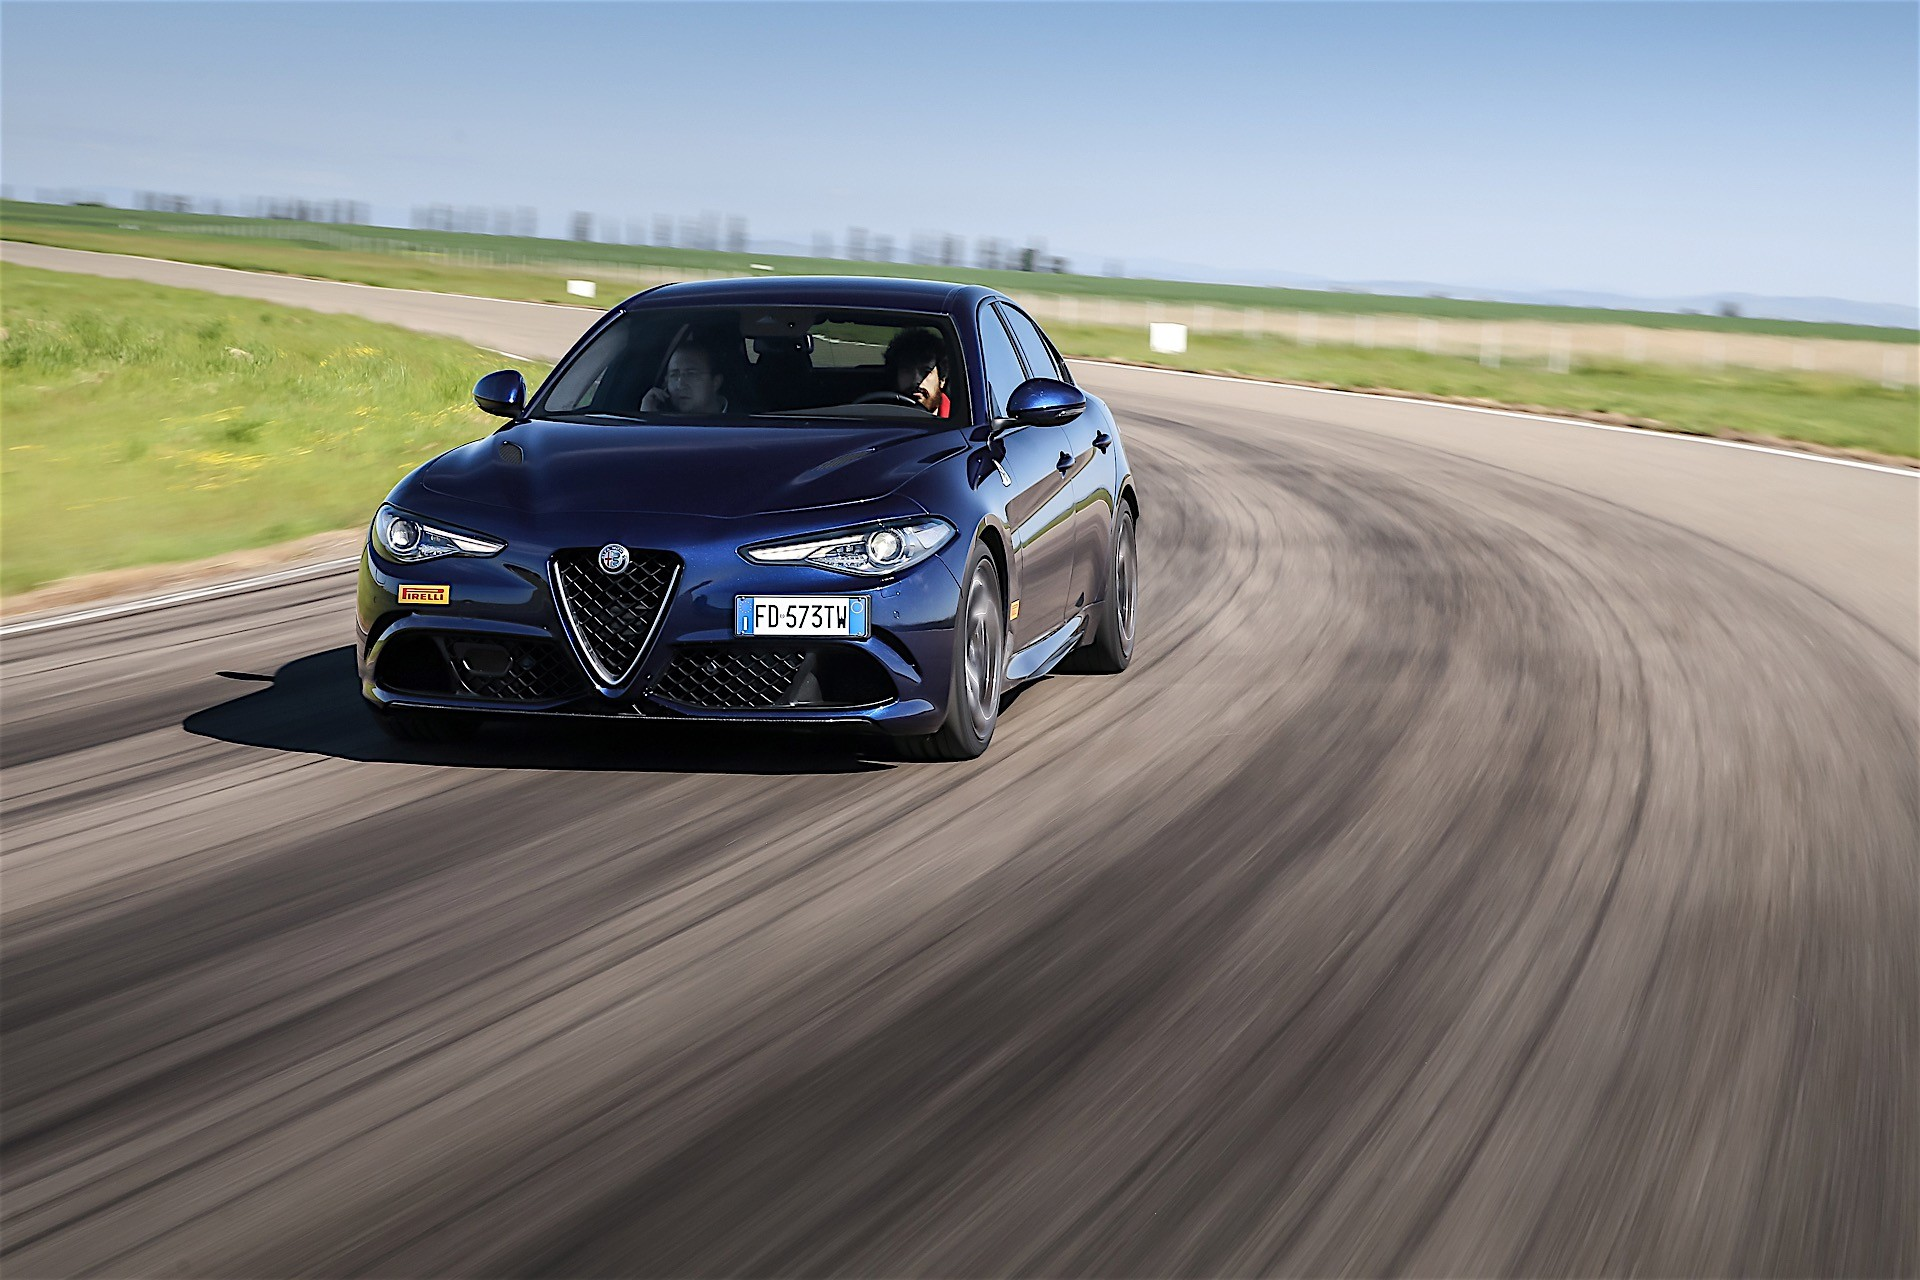 New Alfa Romeo SUV Coming By 2020 With Mild-Hybrid